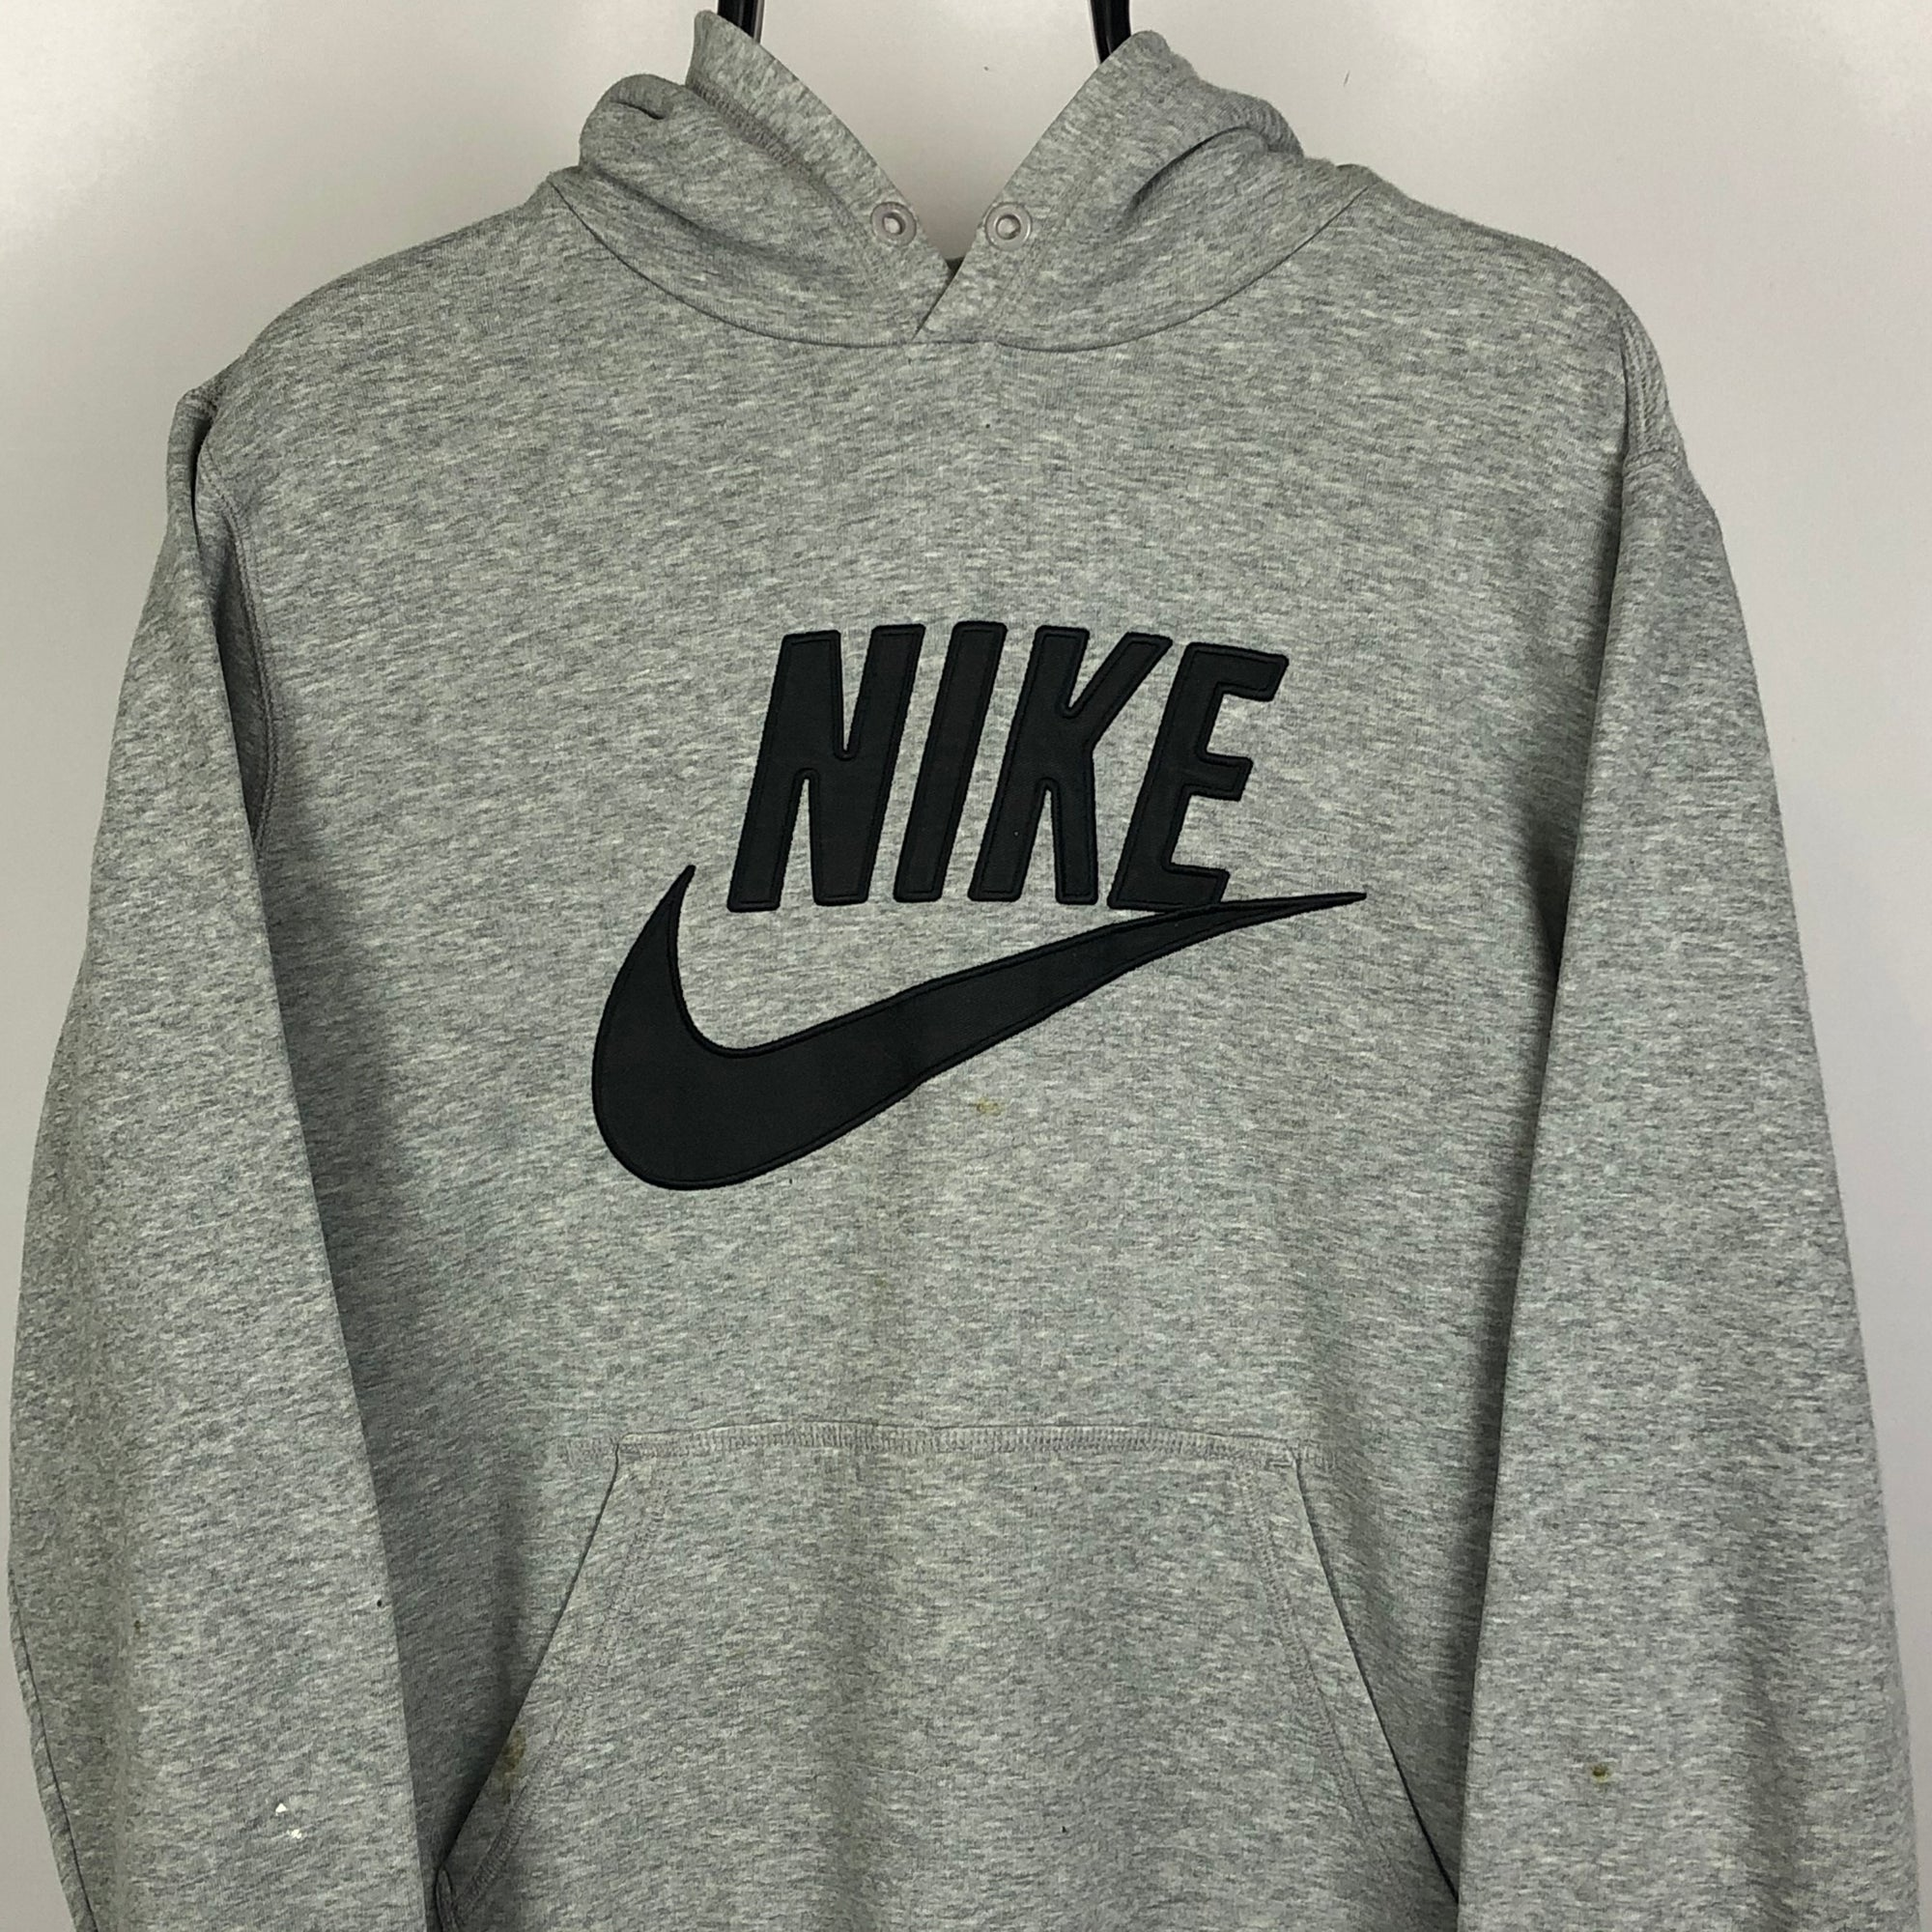 Vintage Nike Embroidered Spellout Hoodie in Grey - Men's Medium/Women's Large